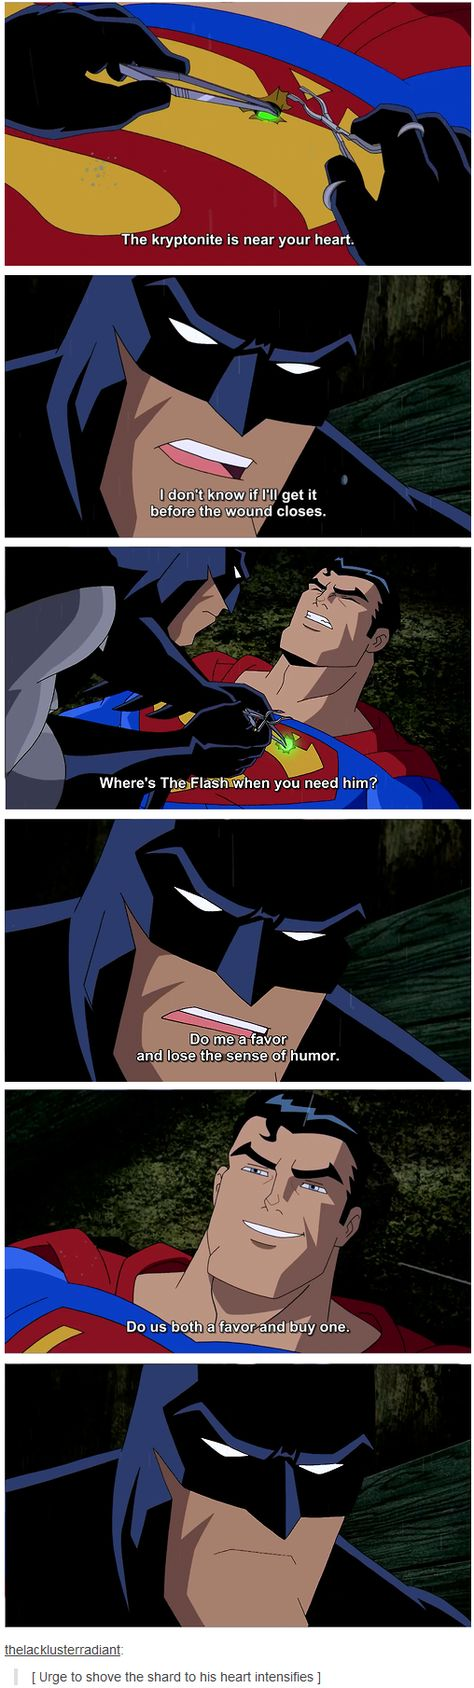 I don't know how Batman resisted the urge to shove that shard of Kryponite in Supes' chest even further than it already was. lol hahahaa